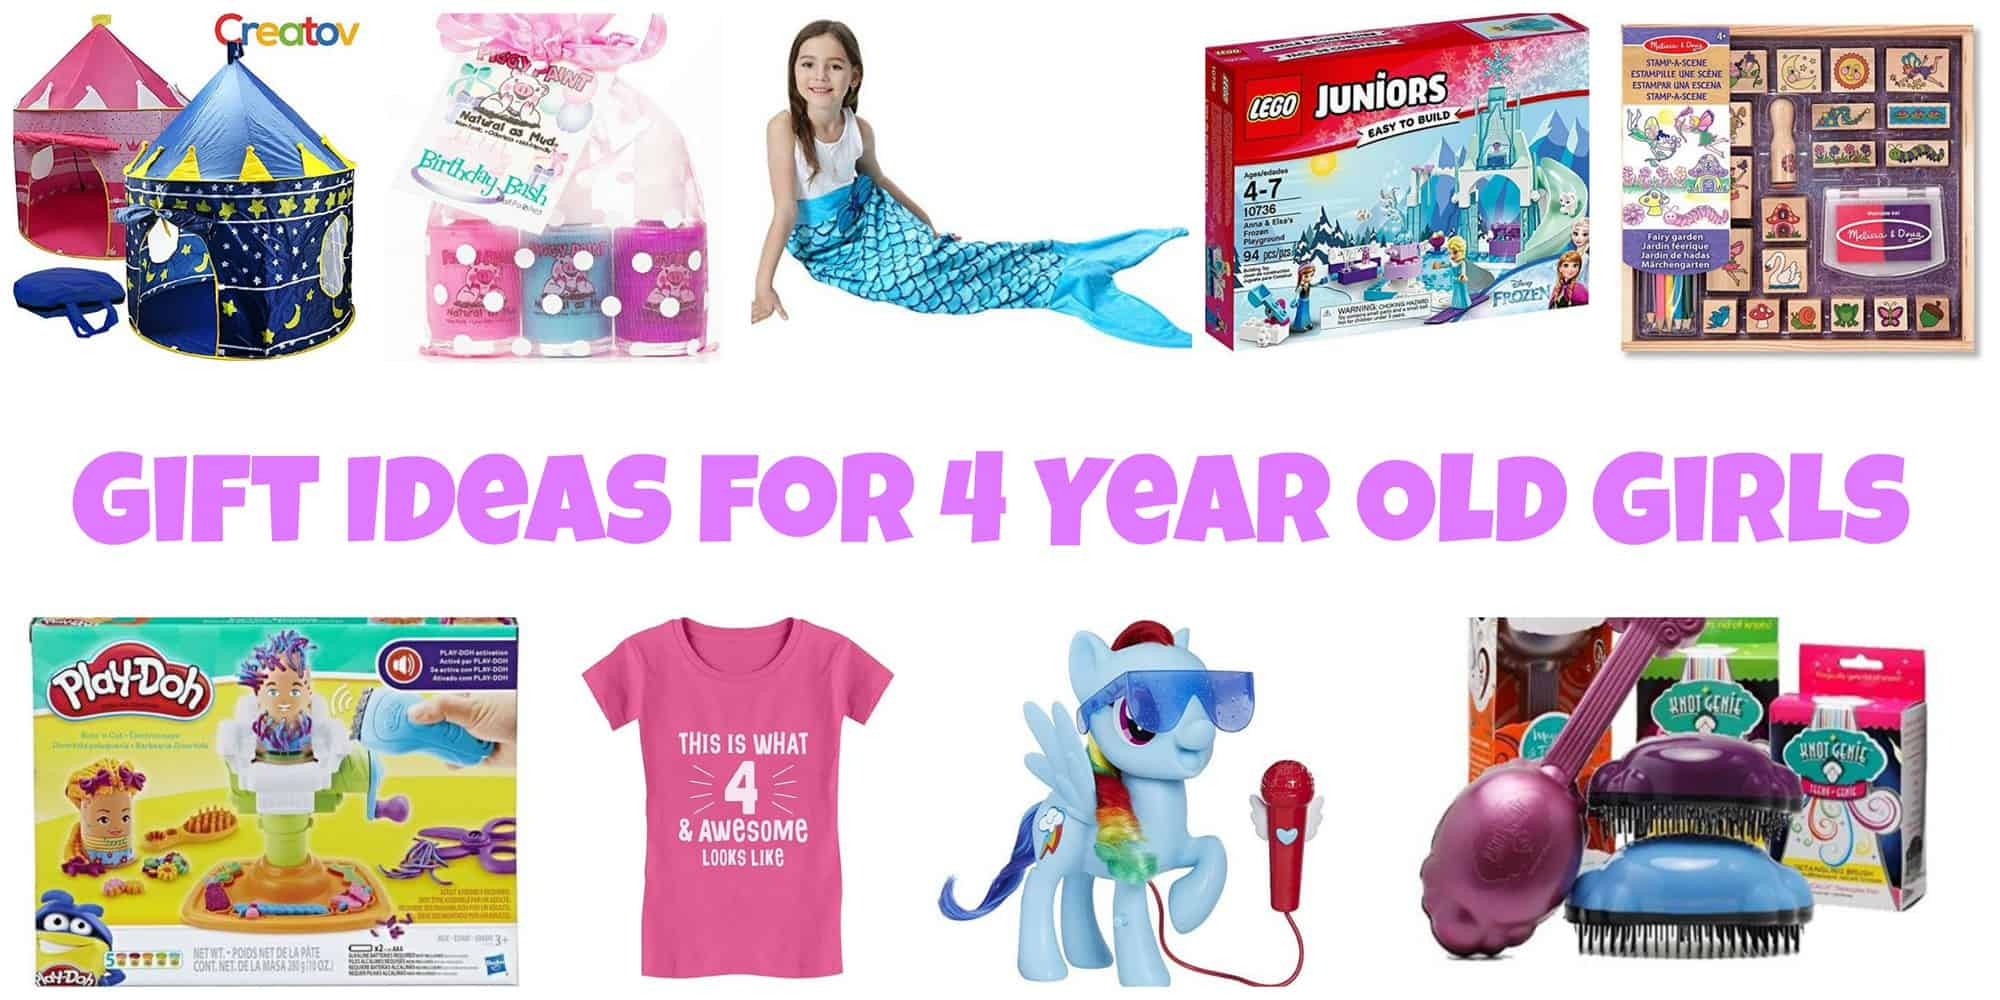 Ultimate list of Toys and Gift Ideas for 4 Year Old Girls